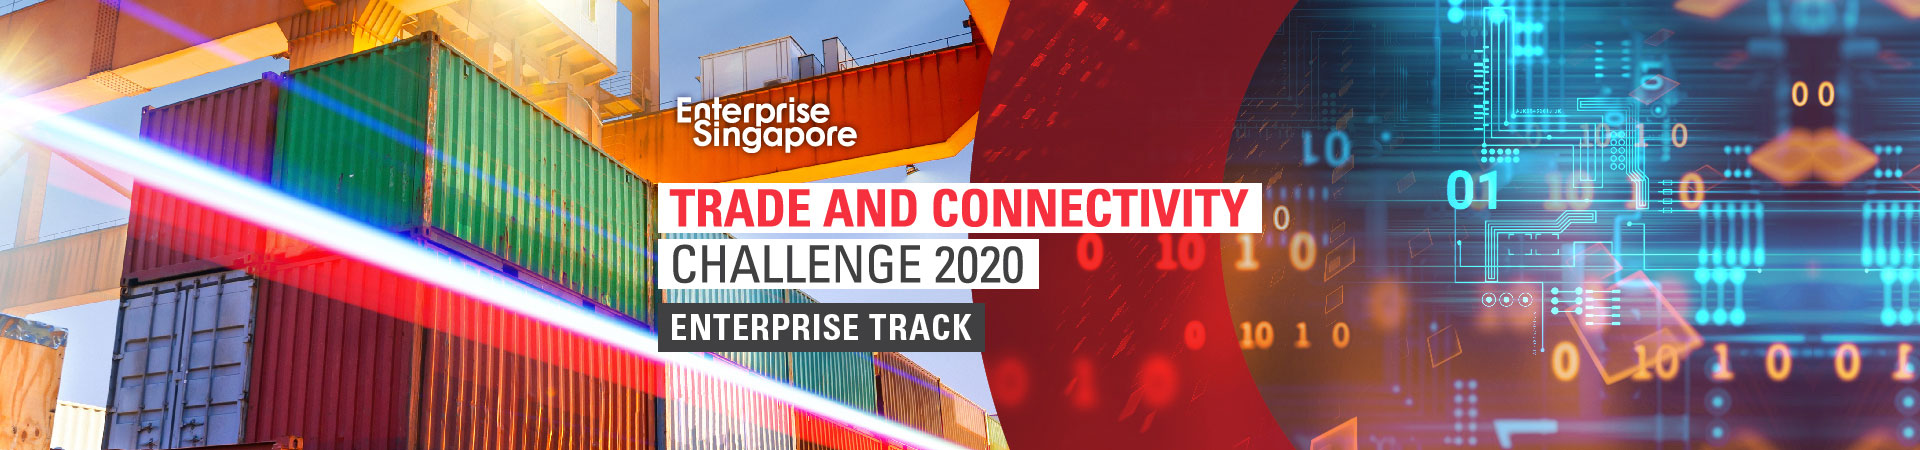 Trade and Connectivity Challenge 2020 - Enterprise Track